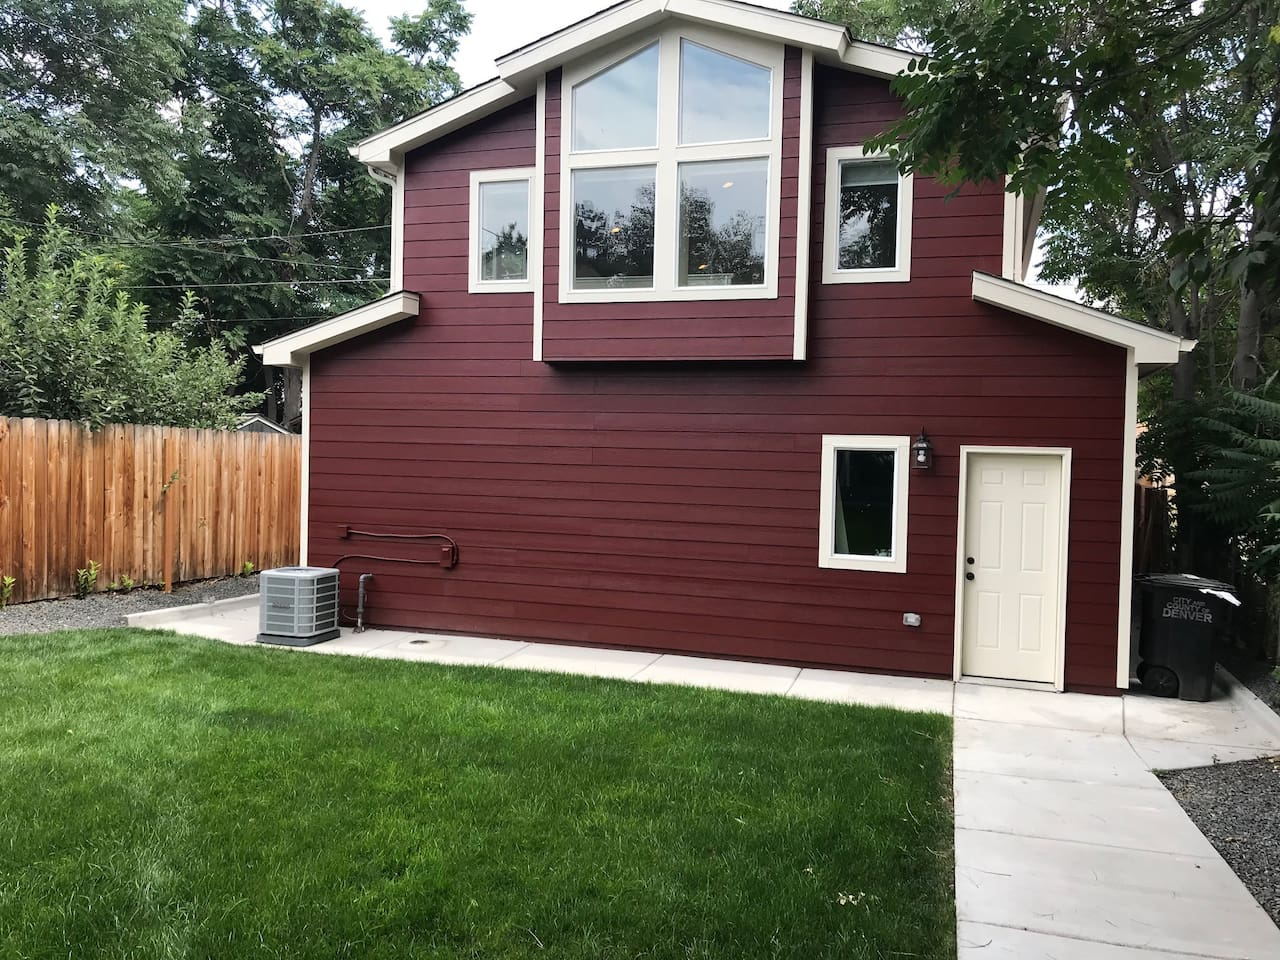 Shared yard with residence, and garage.